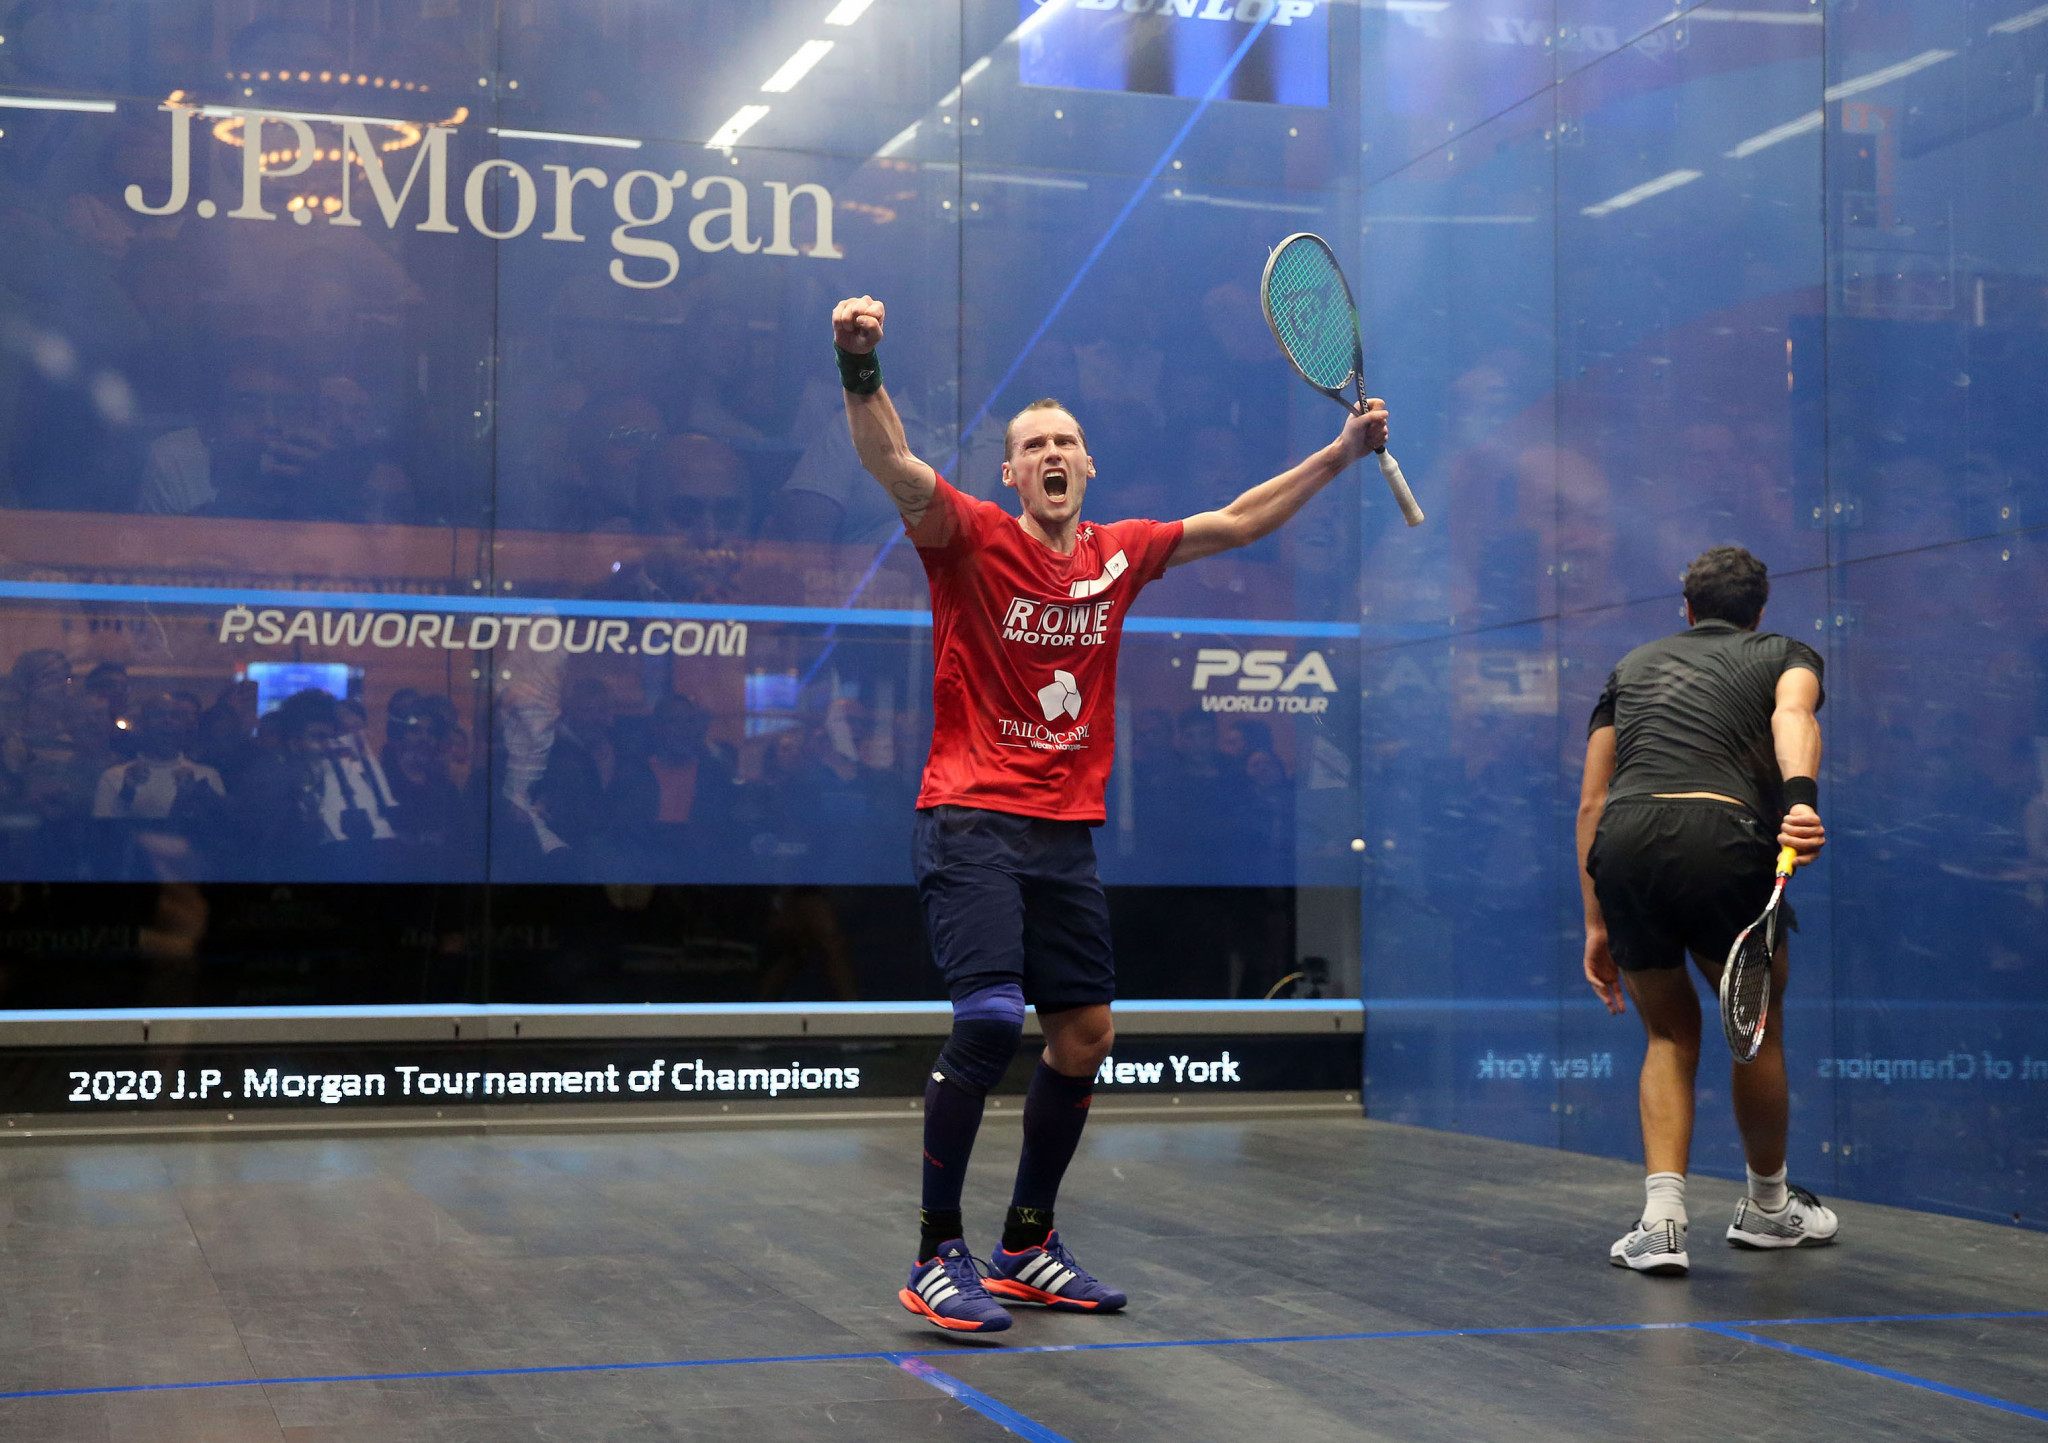 Gaultier, 37, beats world number three in PSA World Tour comeback